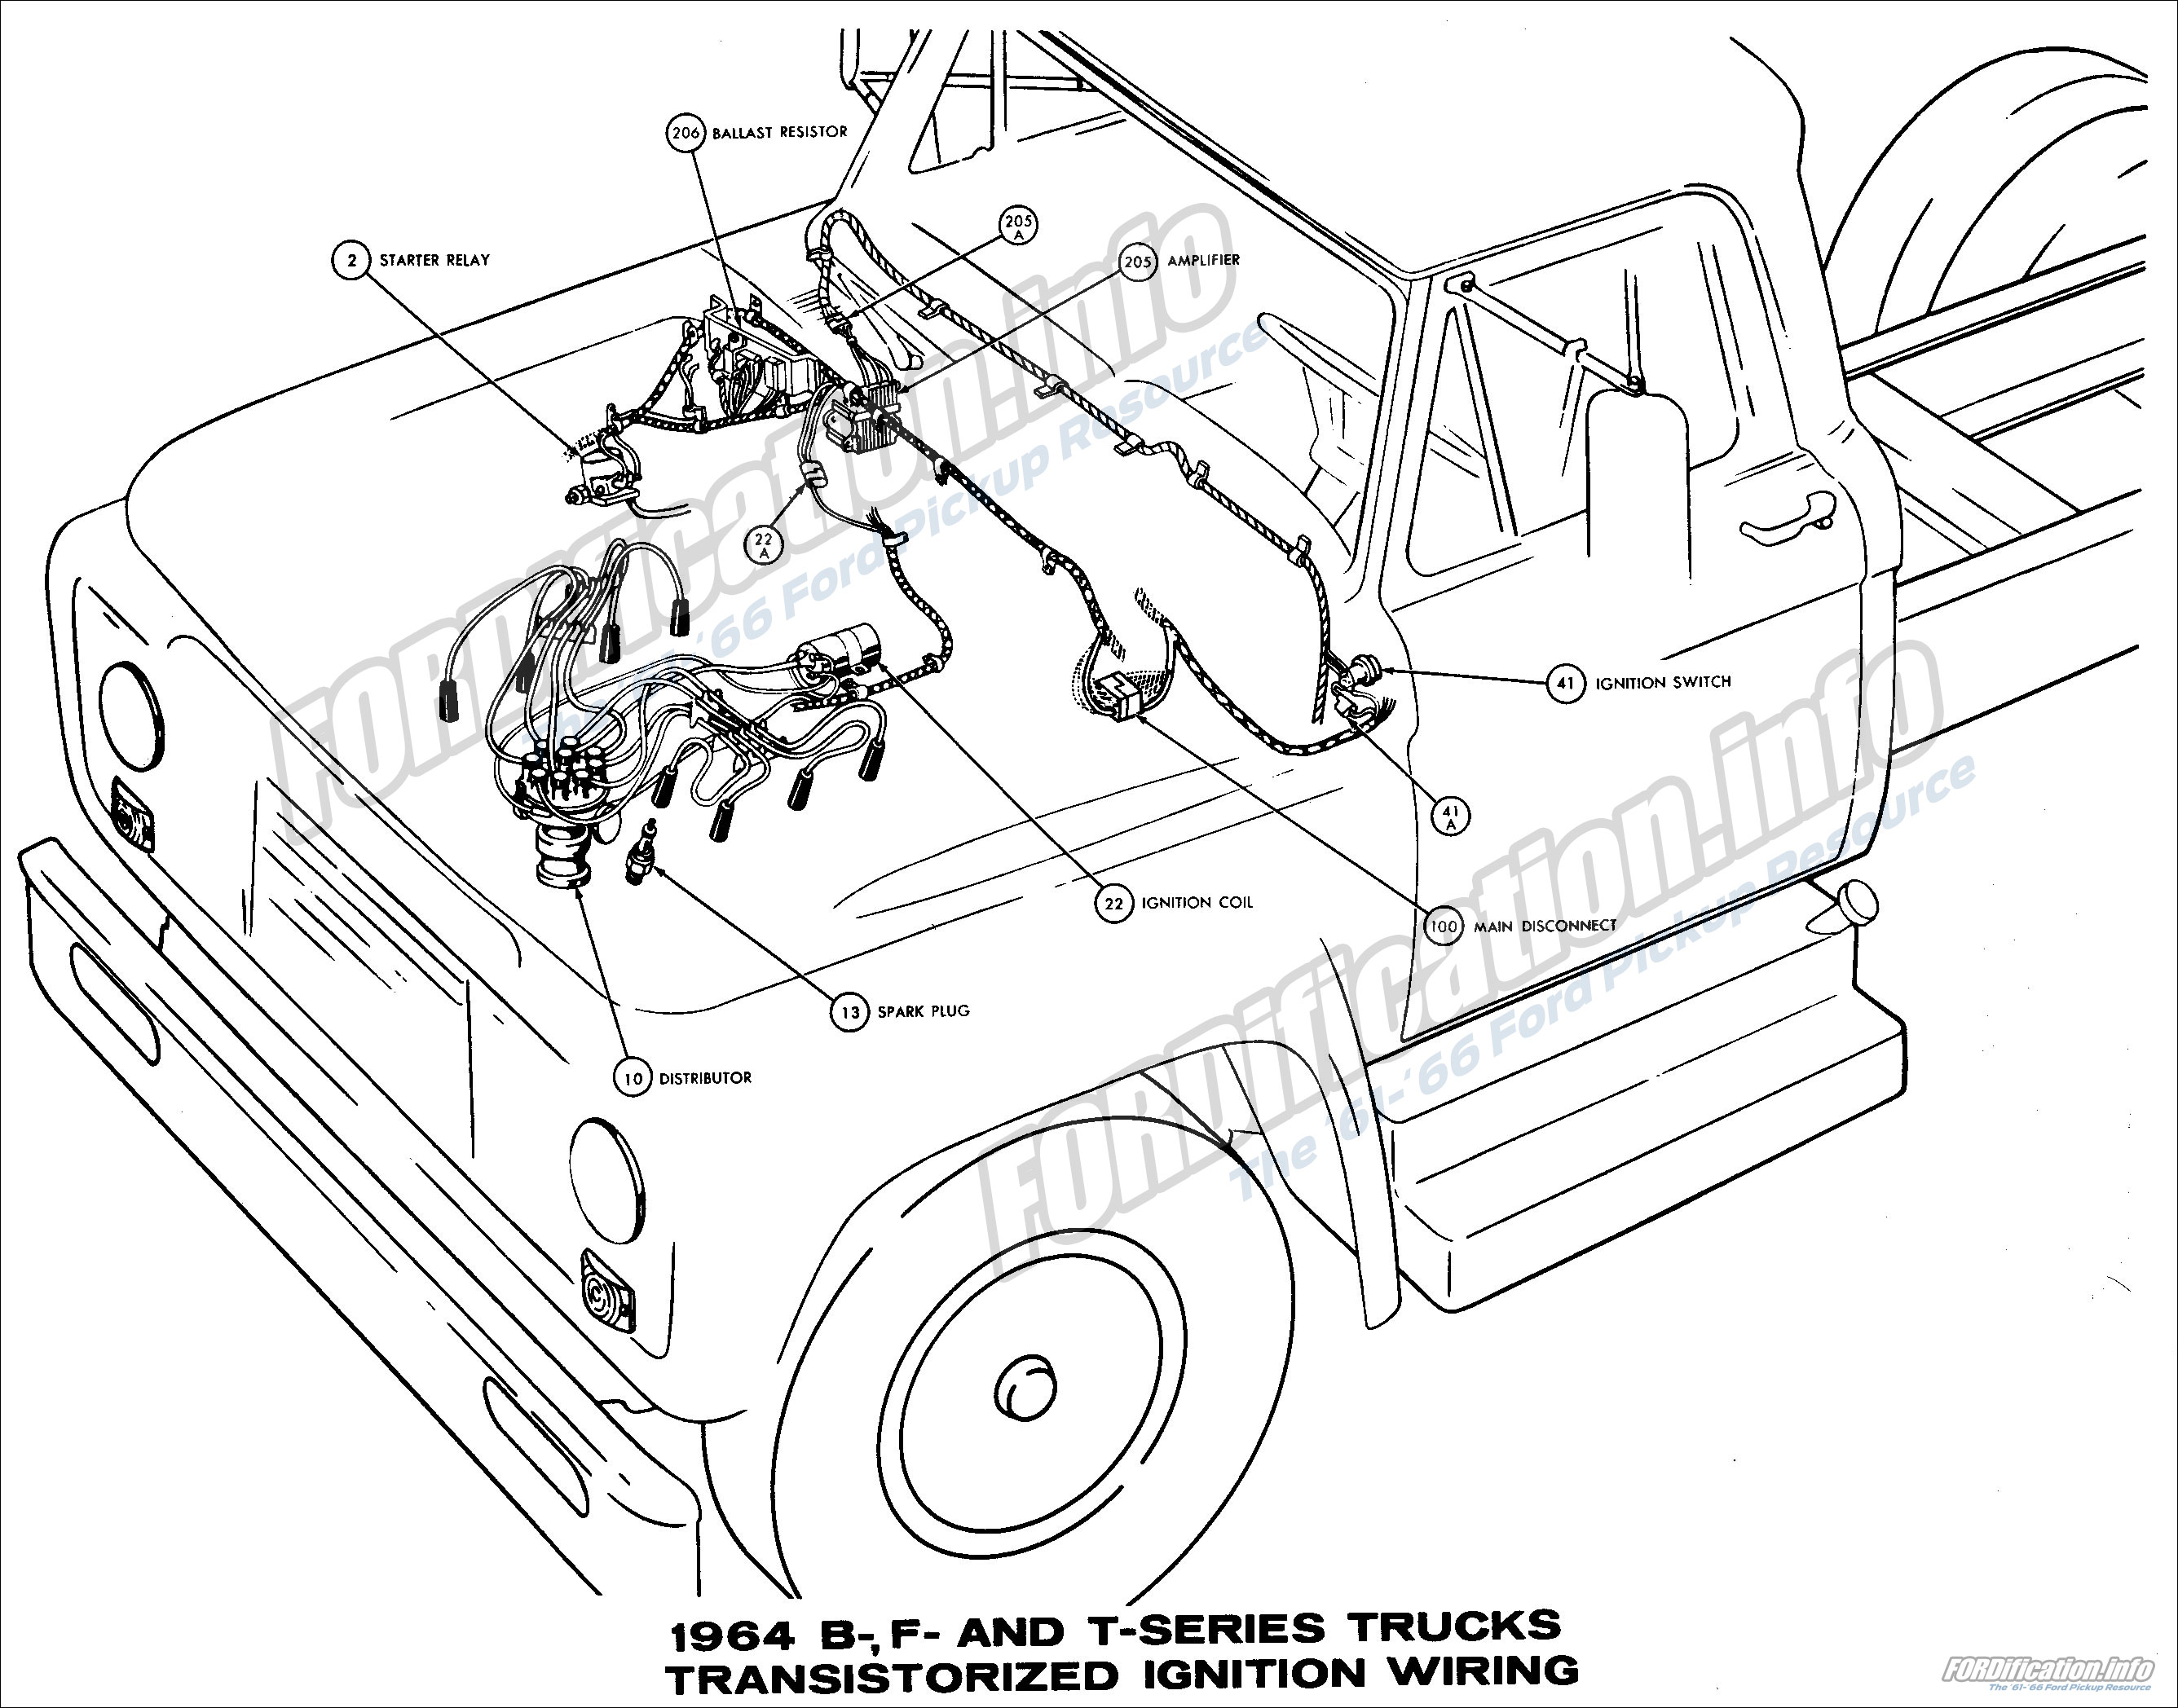 chevy ignition coil wiring diagram ford mondeo mk2 1964 database truck drawing at getdrawings free for personal use 2